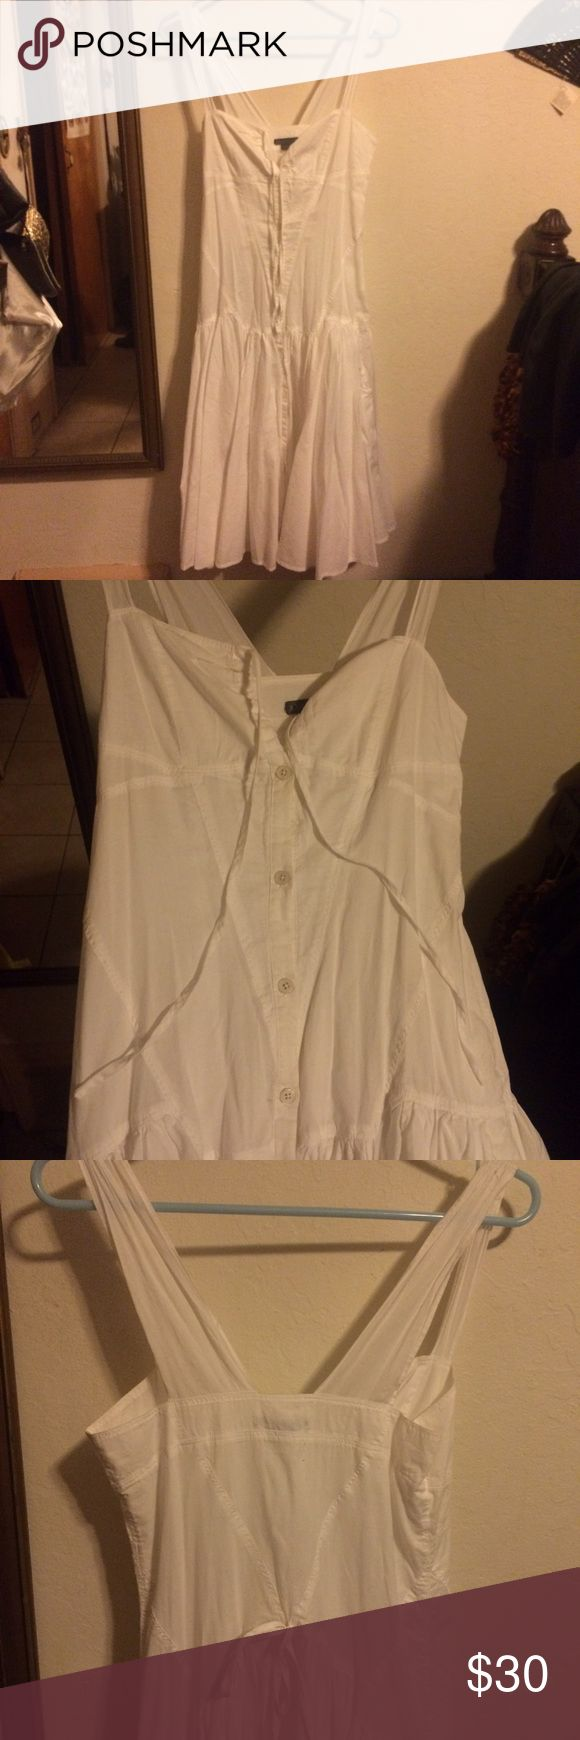 Armani Exchange White Dress Armani Exchange white spring dress! Super cute boho style. Does not fit in the chest area, so I have to let it go. It's in near- perfect condition. Make an offer!✨If we agree on a price I can repost and item may be eligible for discounted shipping 😄 Armani Exchange Dresses